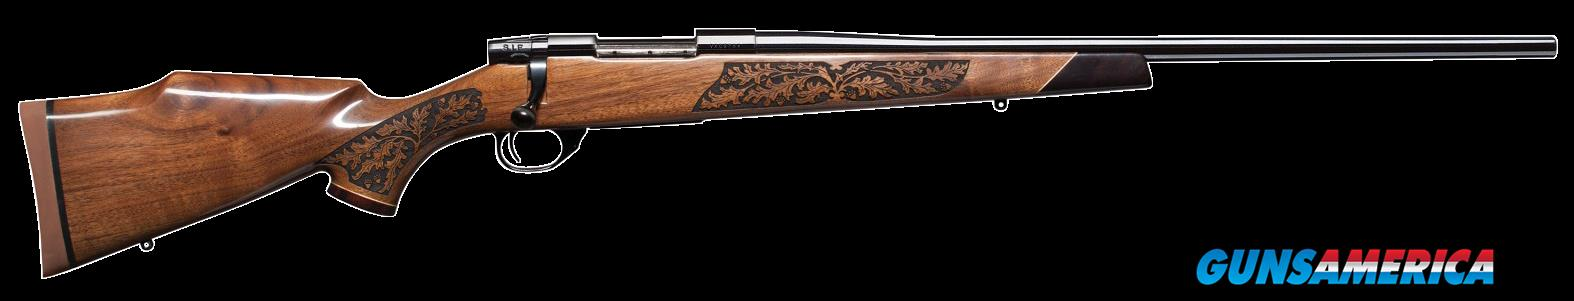 "Weatherby VGZ257WR4O Vanguard Laserguard Bolt 257 Weatherby Magnum 24"" 3+1 Walnut Stk Blued  Guns > Rifles > Weatherby Rifles > Sporting"